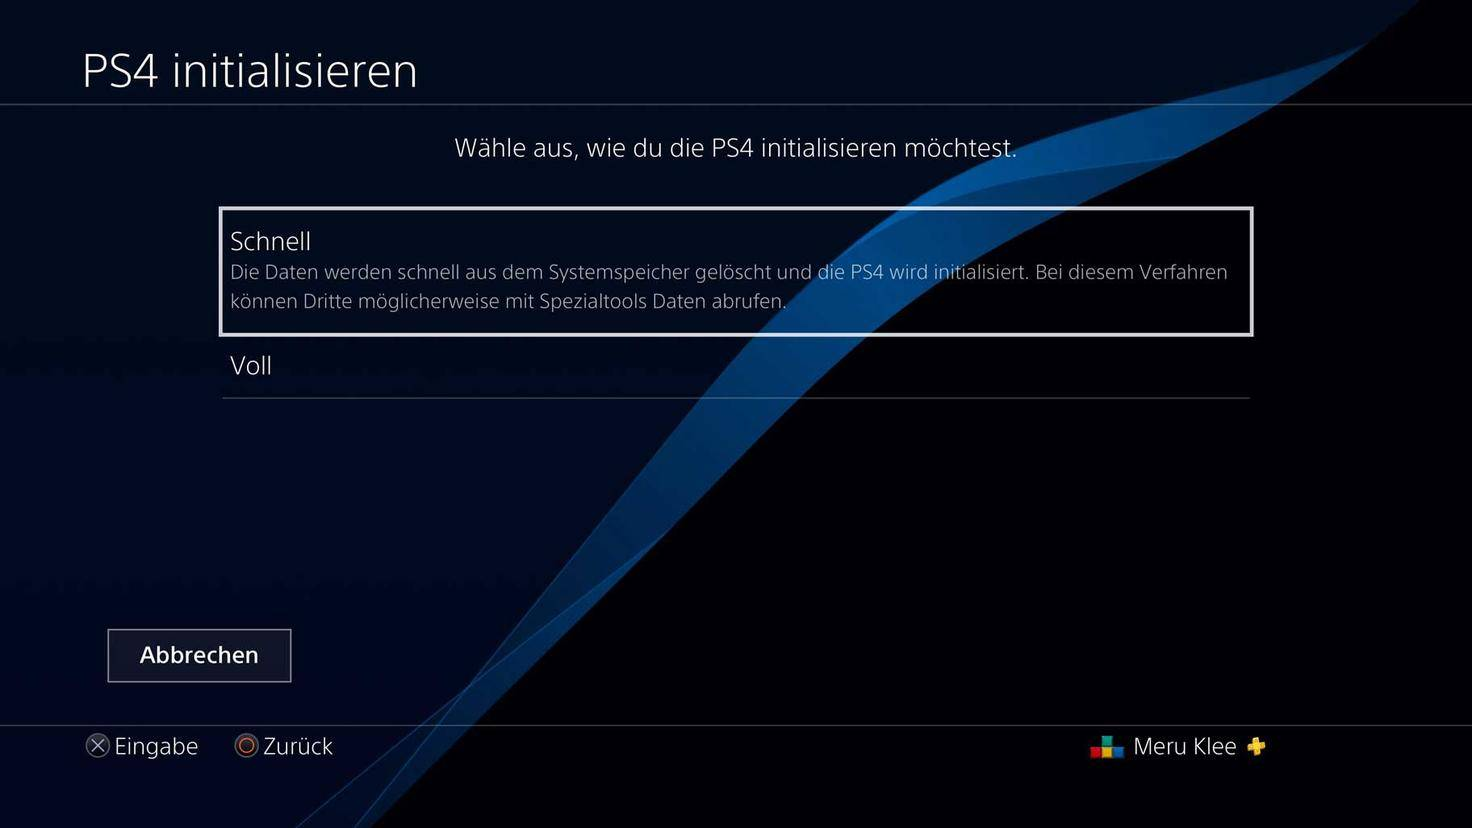 ps4-initialisieren-screenshot